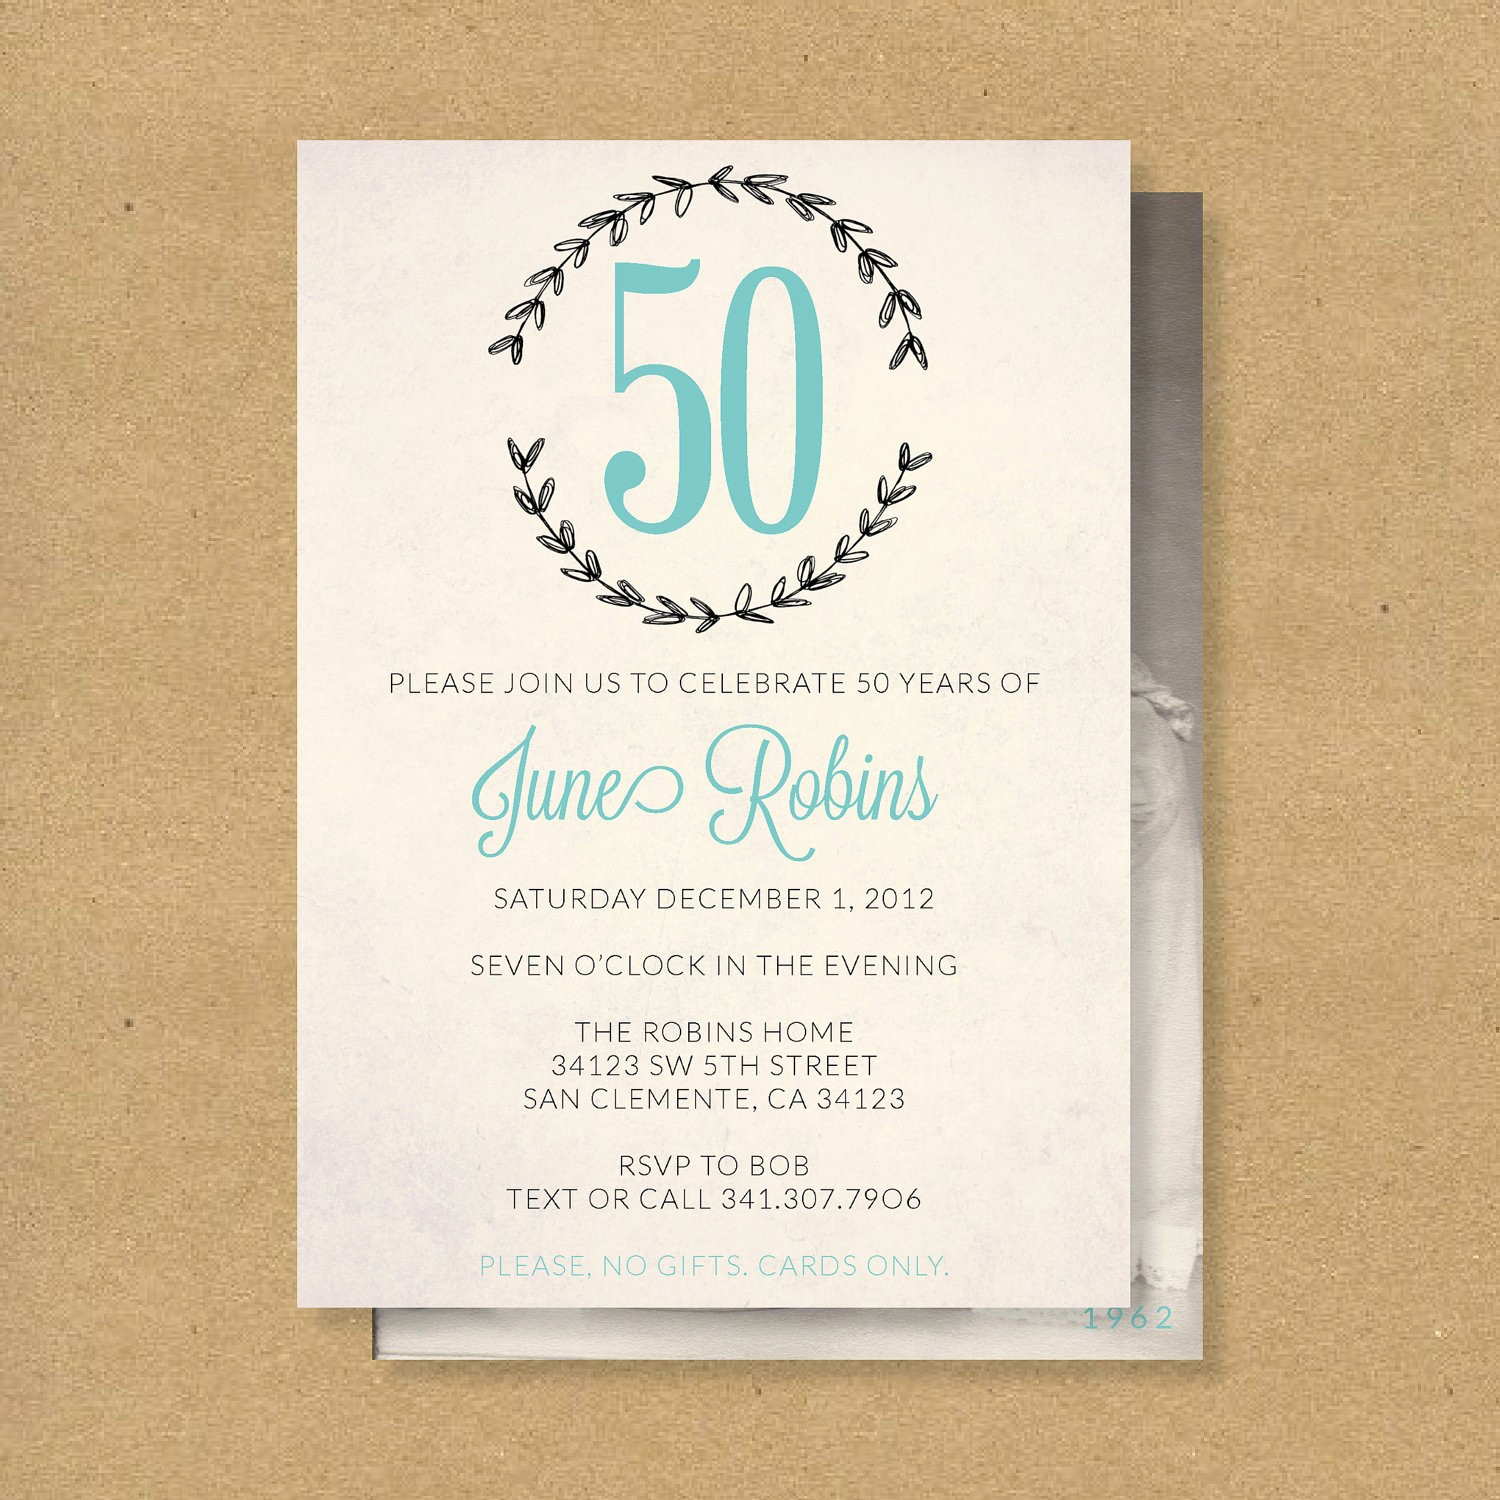 Party Invitation Template Microsoft Word Lovely Doc Word Template Birthday Invitation Sample Doc